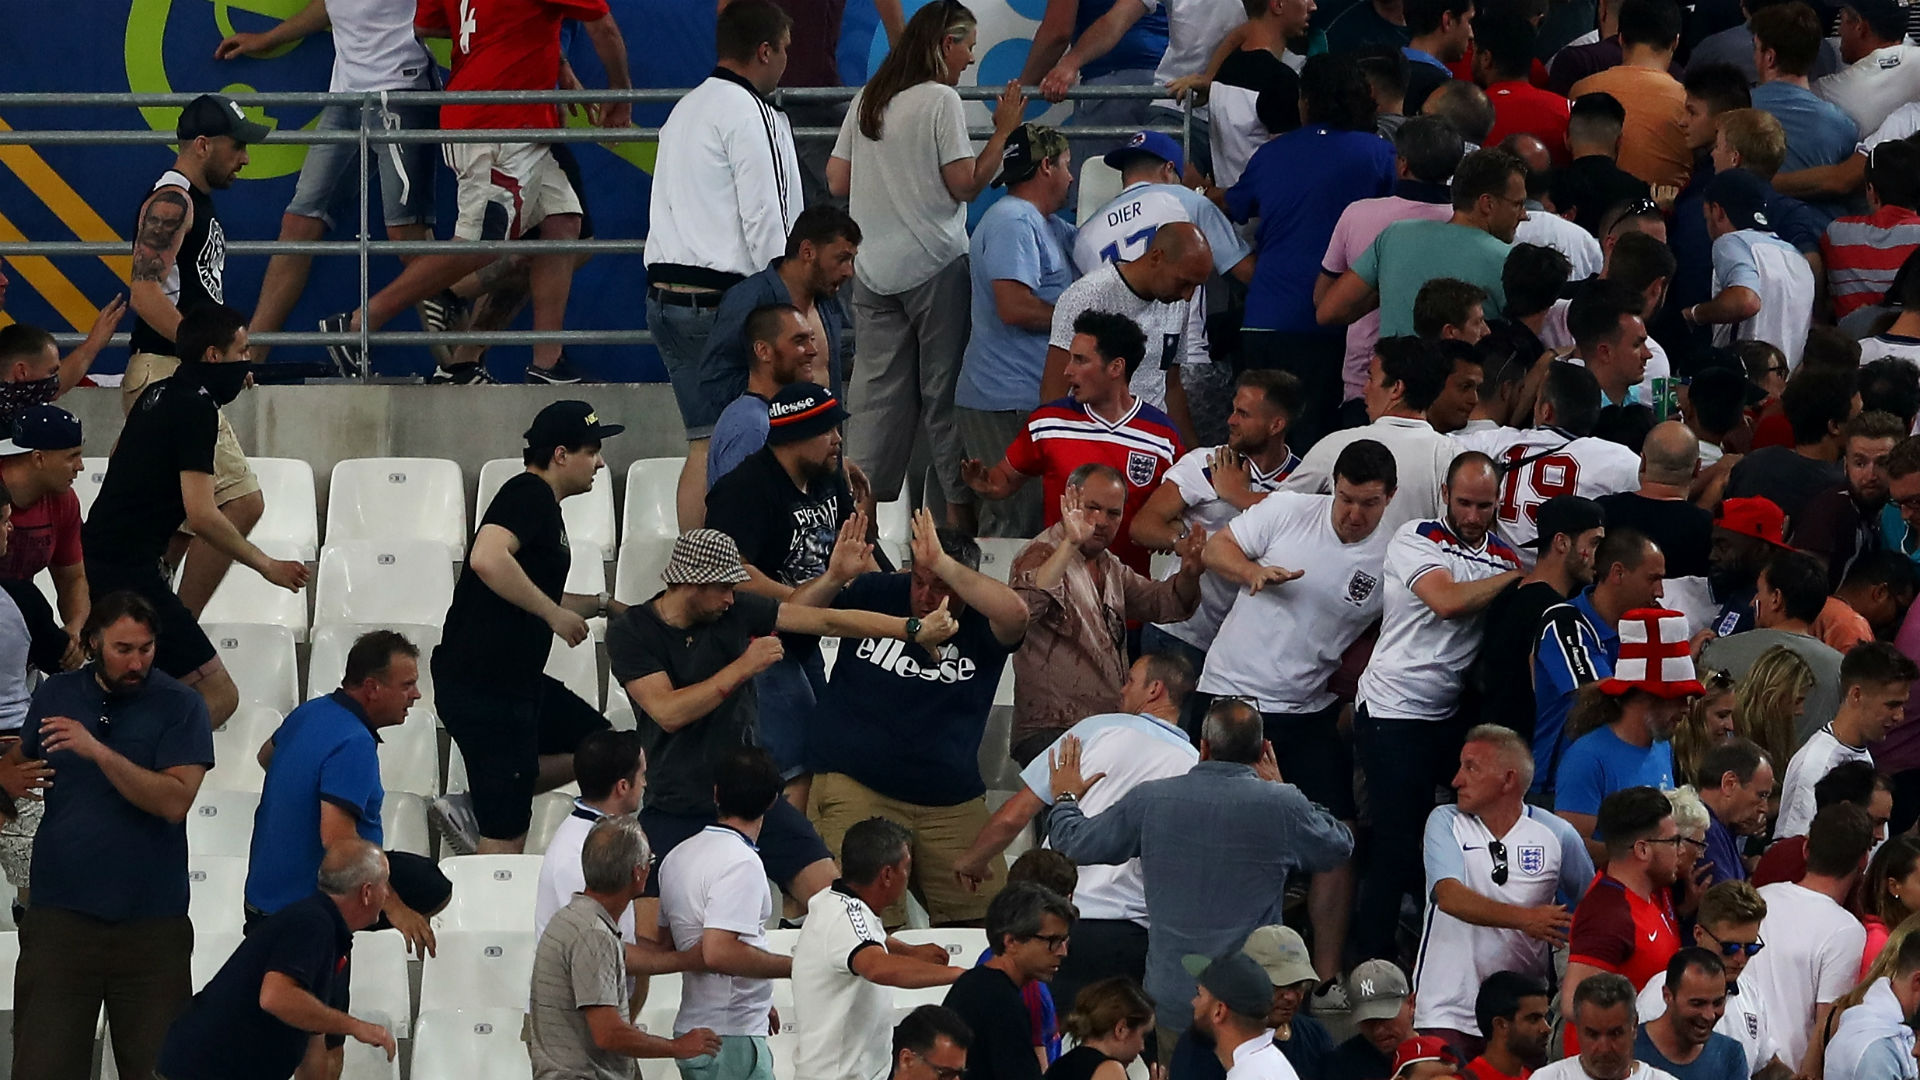 England Russia Euro 2016 fans hooligans